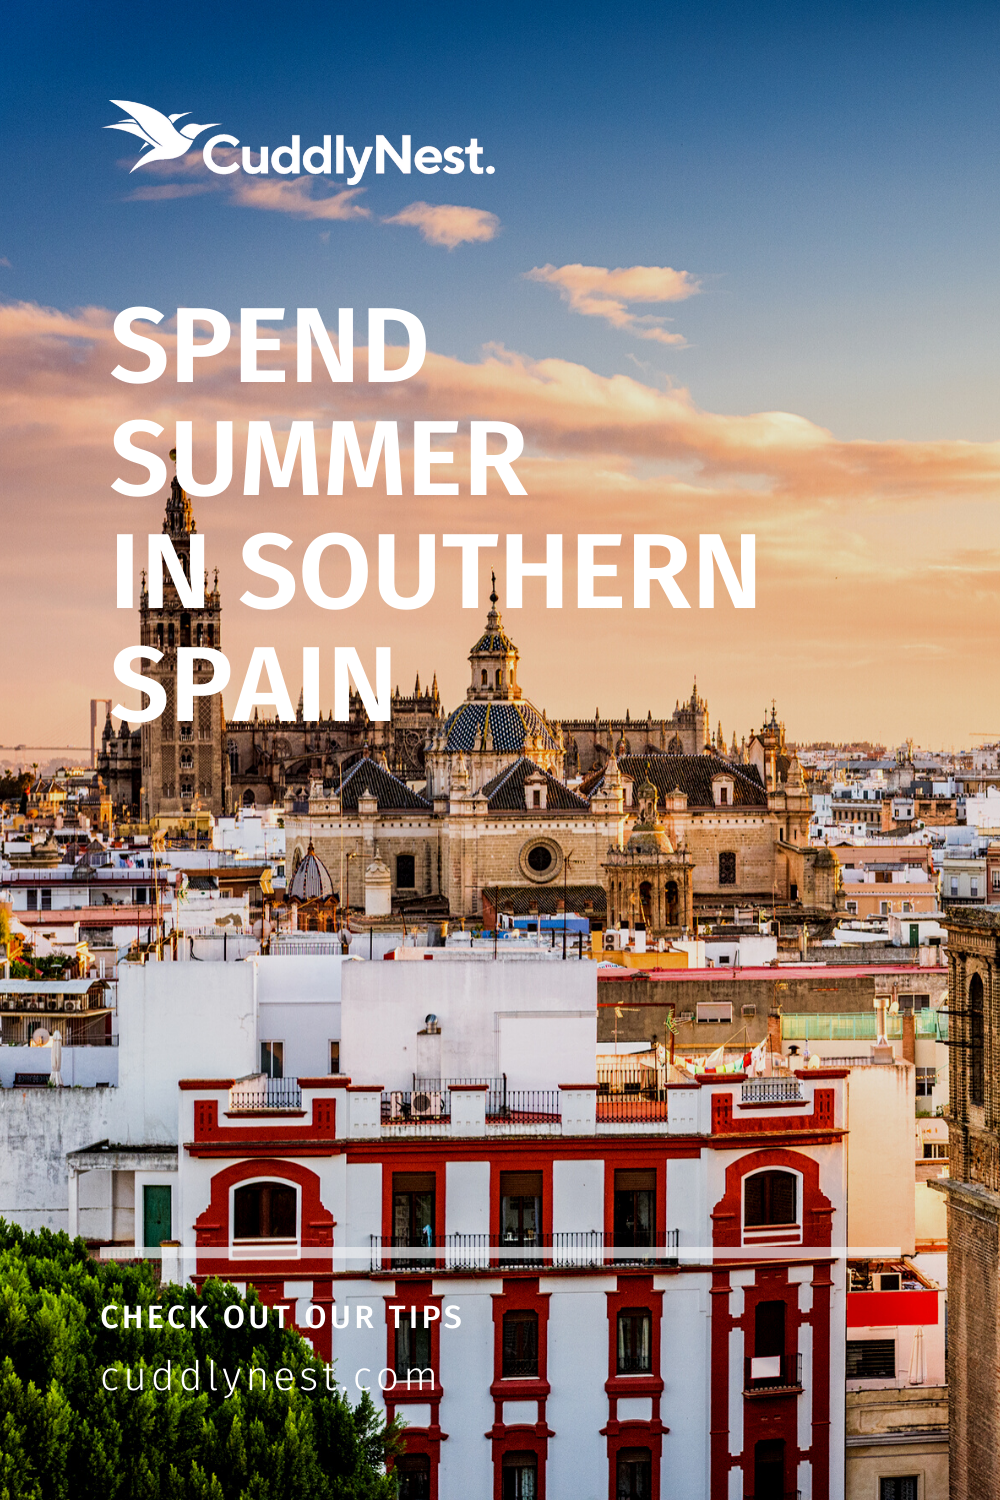 13 Best Cities To Visit In Spain 2021 With Photos Cuddlynest Travel Blog Spain Travel Guide Spain Destinations Spain Travel